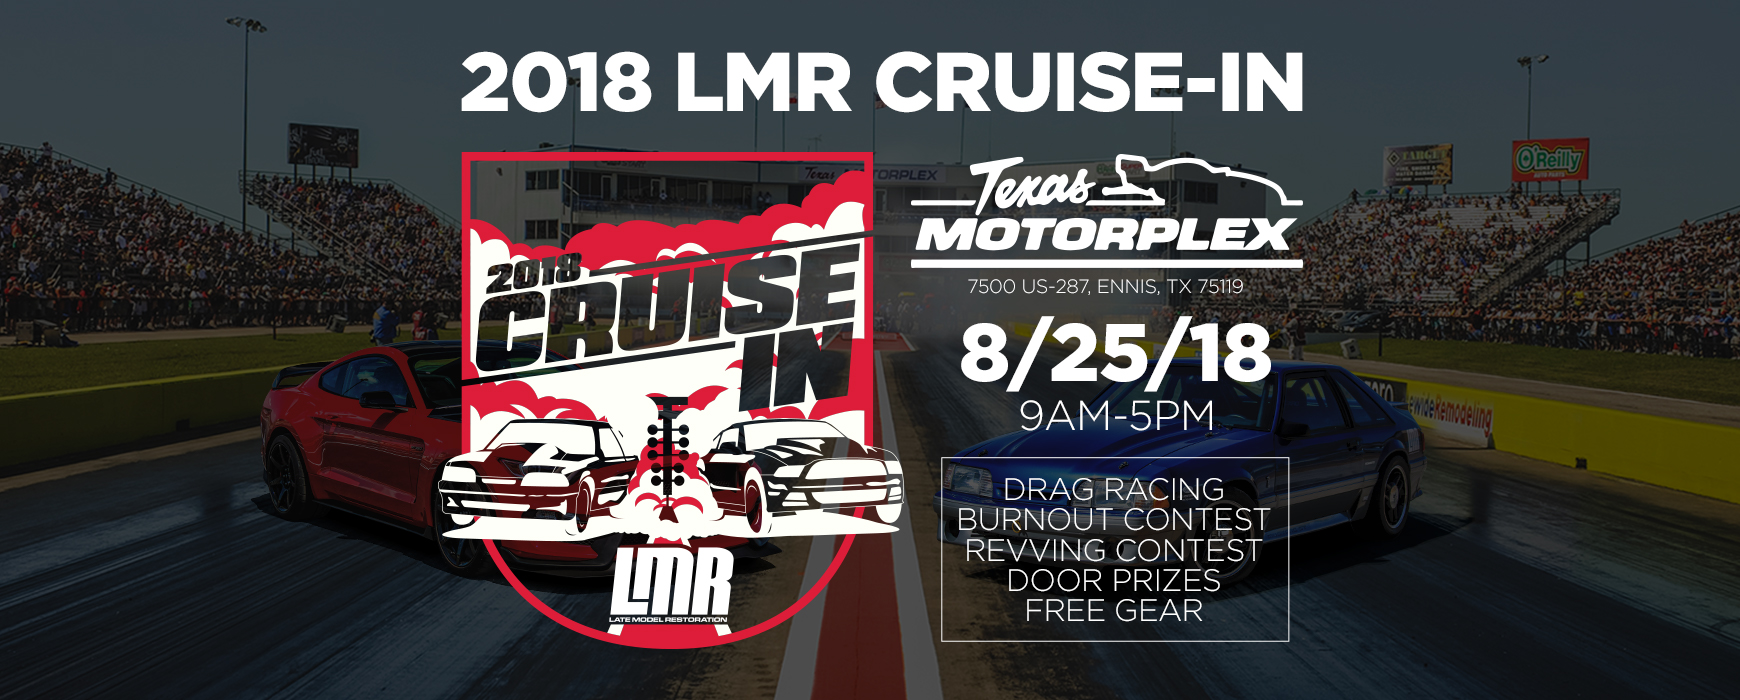 LMR Cruise-In